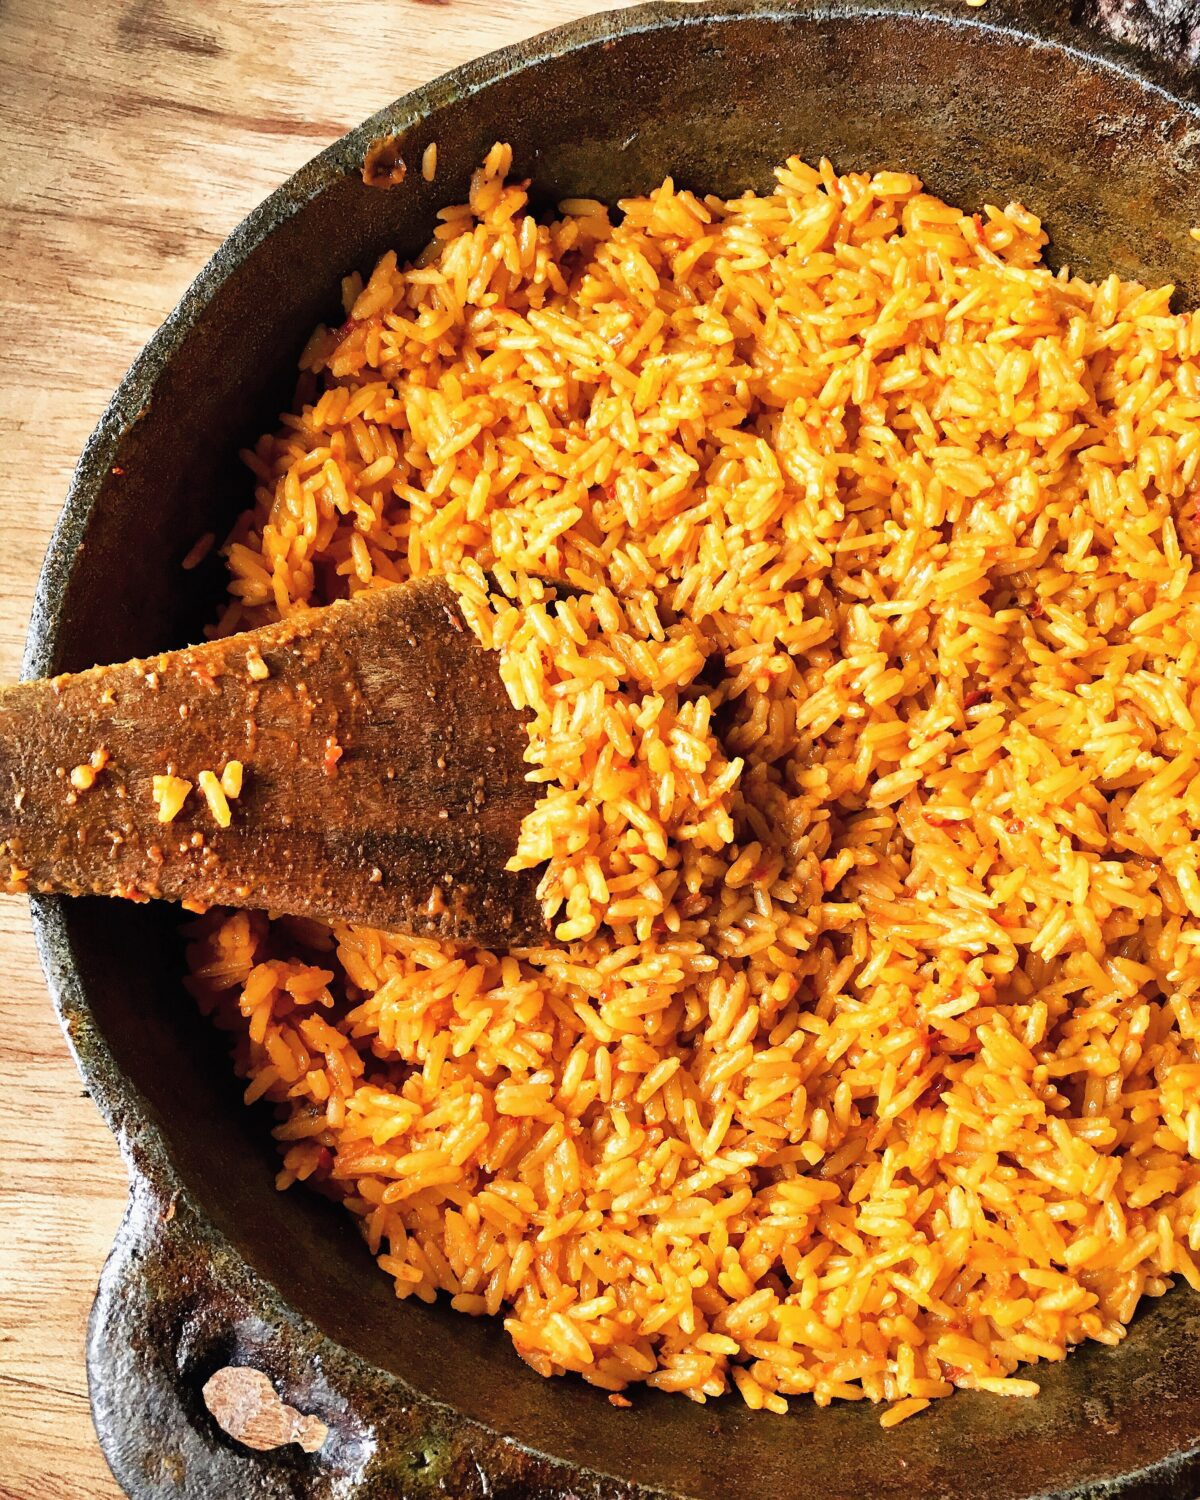 Juneteenth Cookout 2021: Smoky Party-Style Jollof Rice | Immaculate Ruému